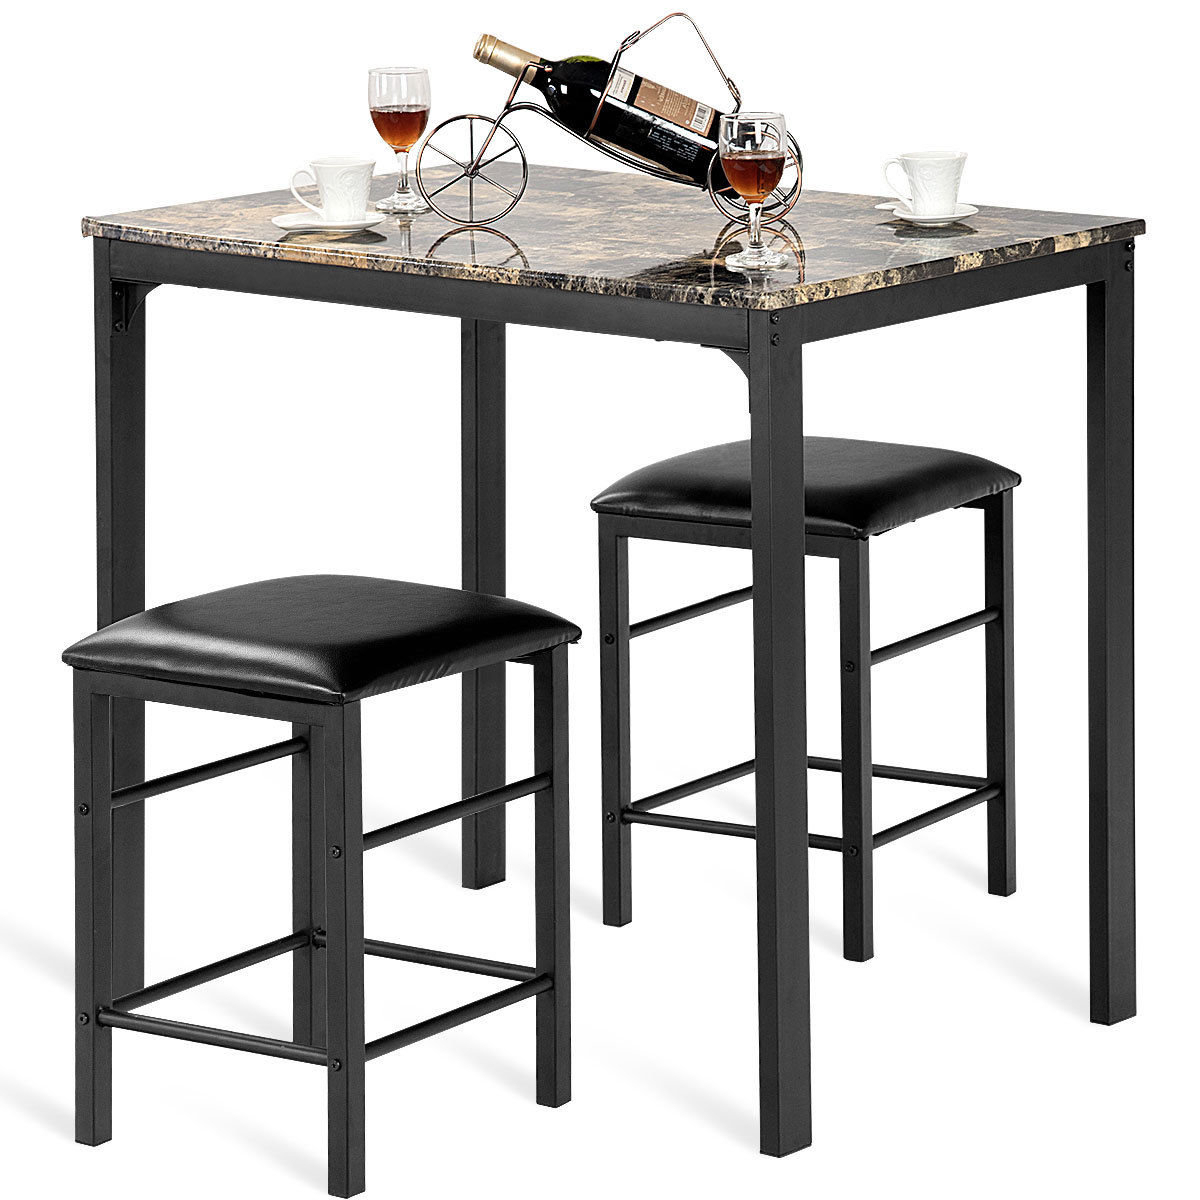 Miskell 5 Piece Dining Sets Inside Latest Winston Porter Mitzel 3 Piece Dining Set & Reviews (View 12 of 25)